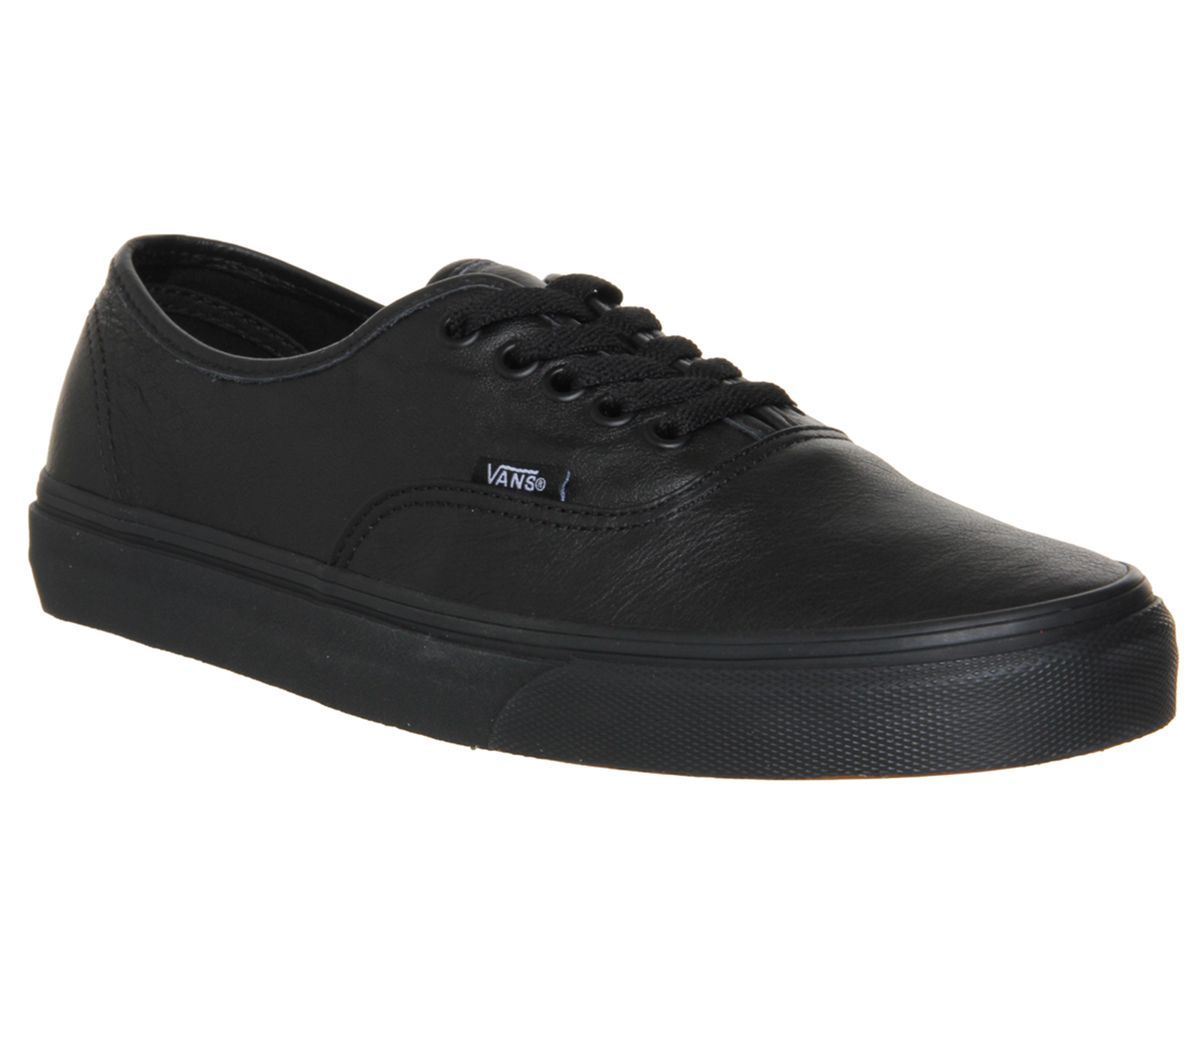 6c1553a57517 Vans Authentic Leather Black Mono - Unisex Sports